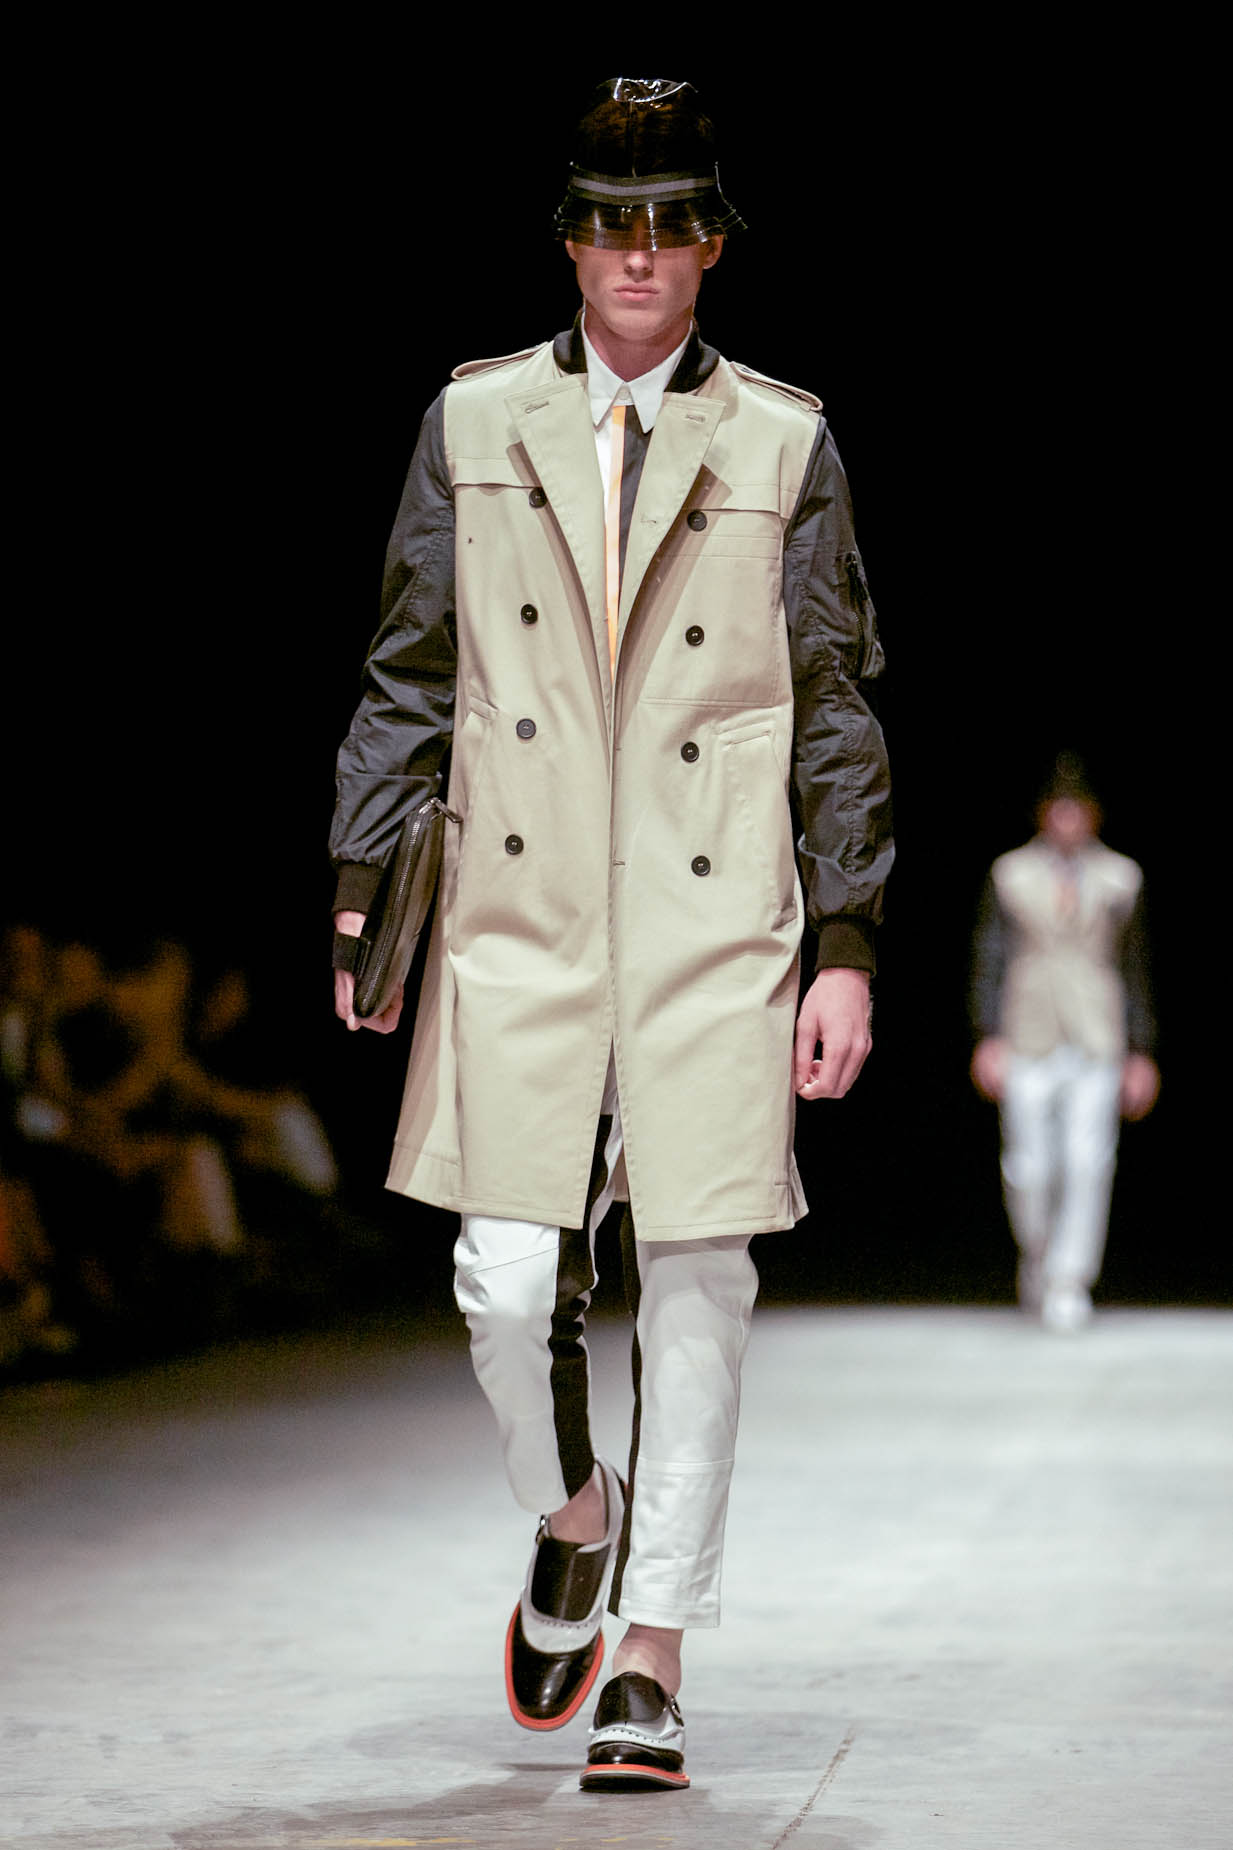 Andrea Pompilio Spring Summer 2013 Men Collection Pitti Immagine Uomo